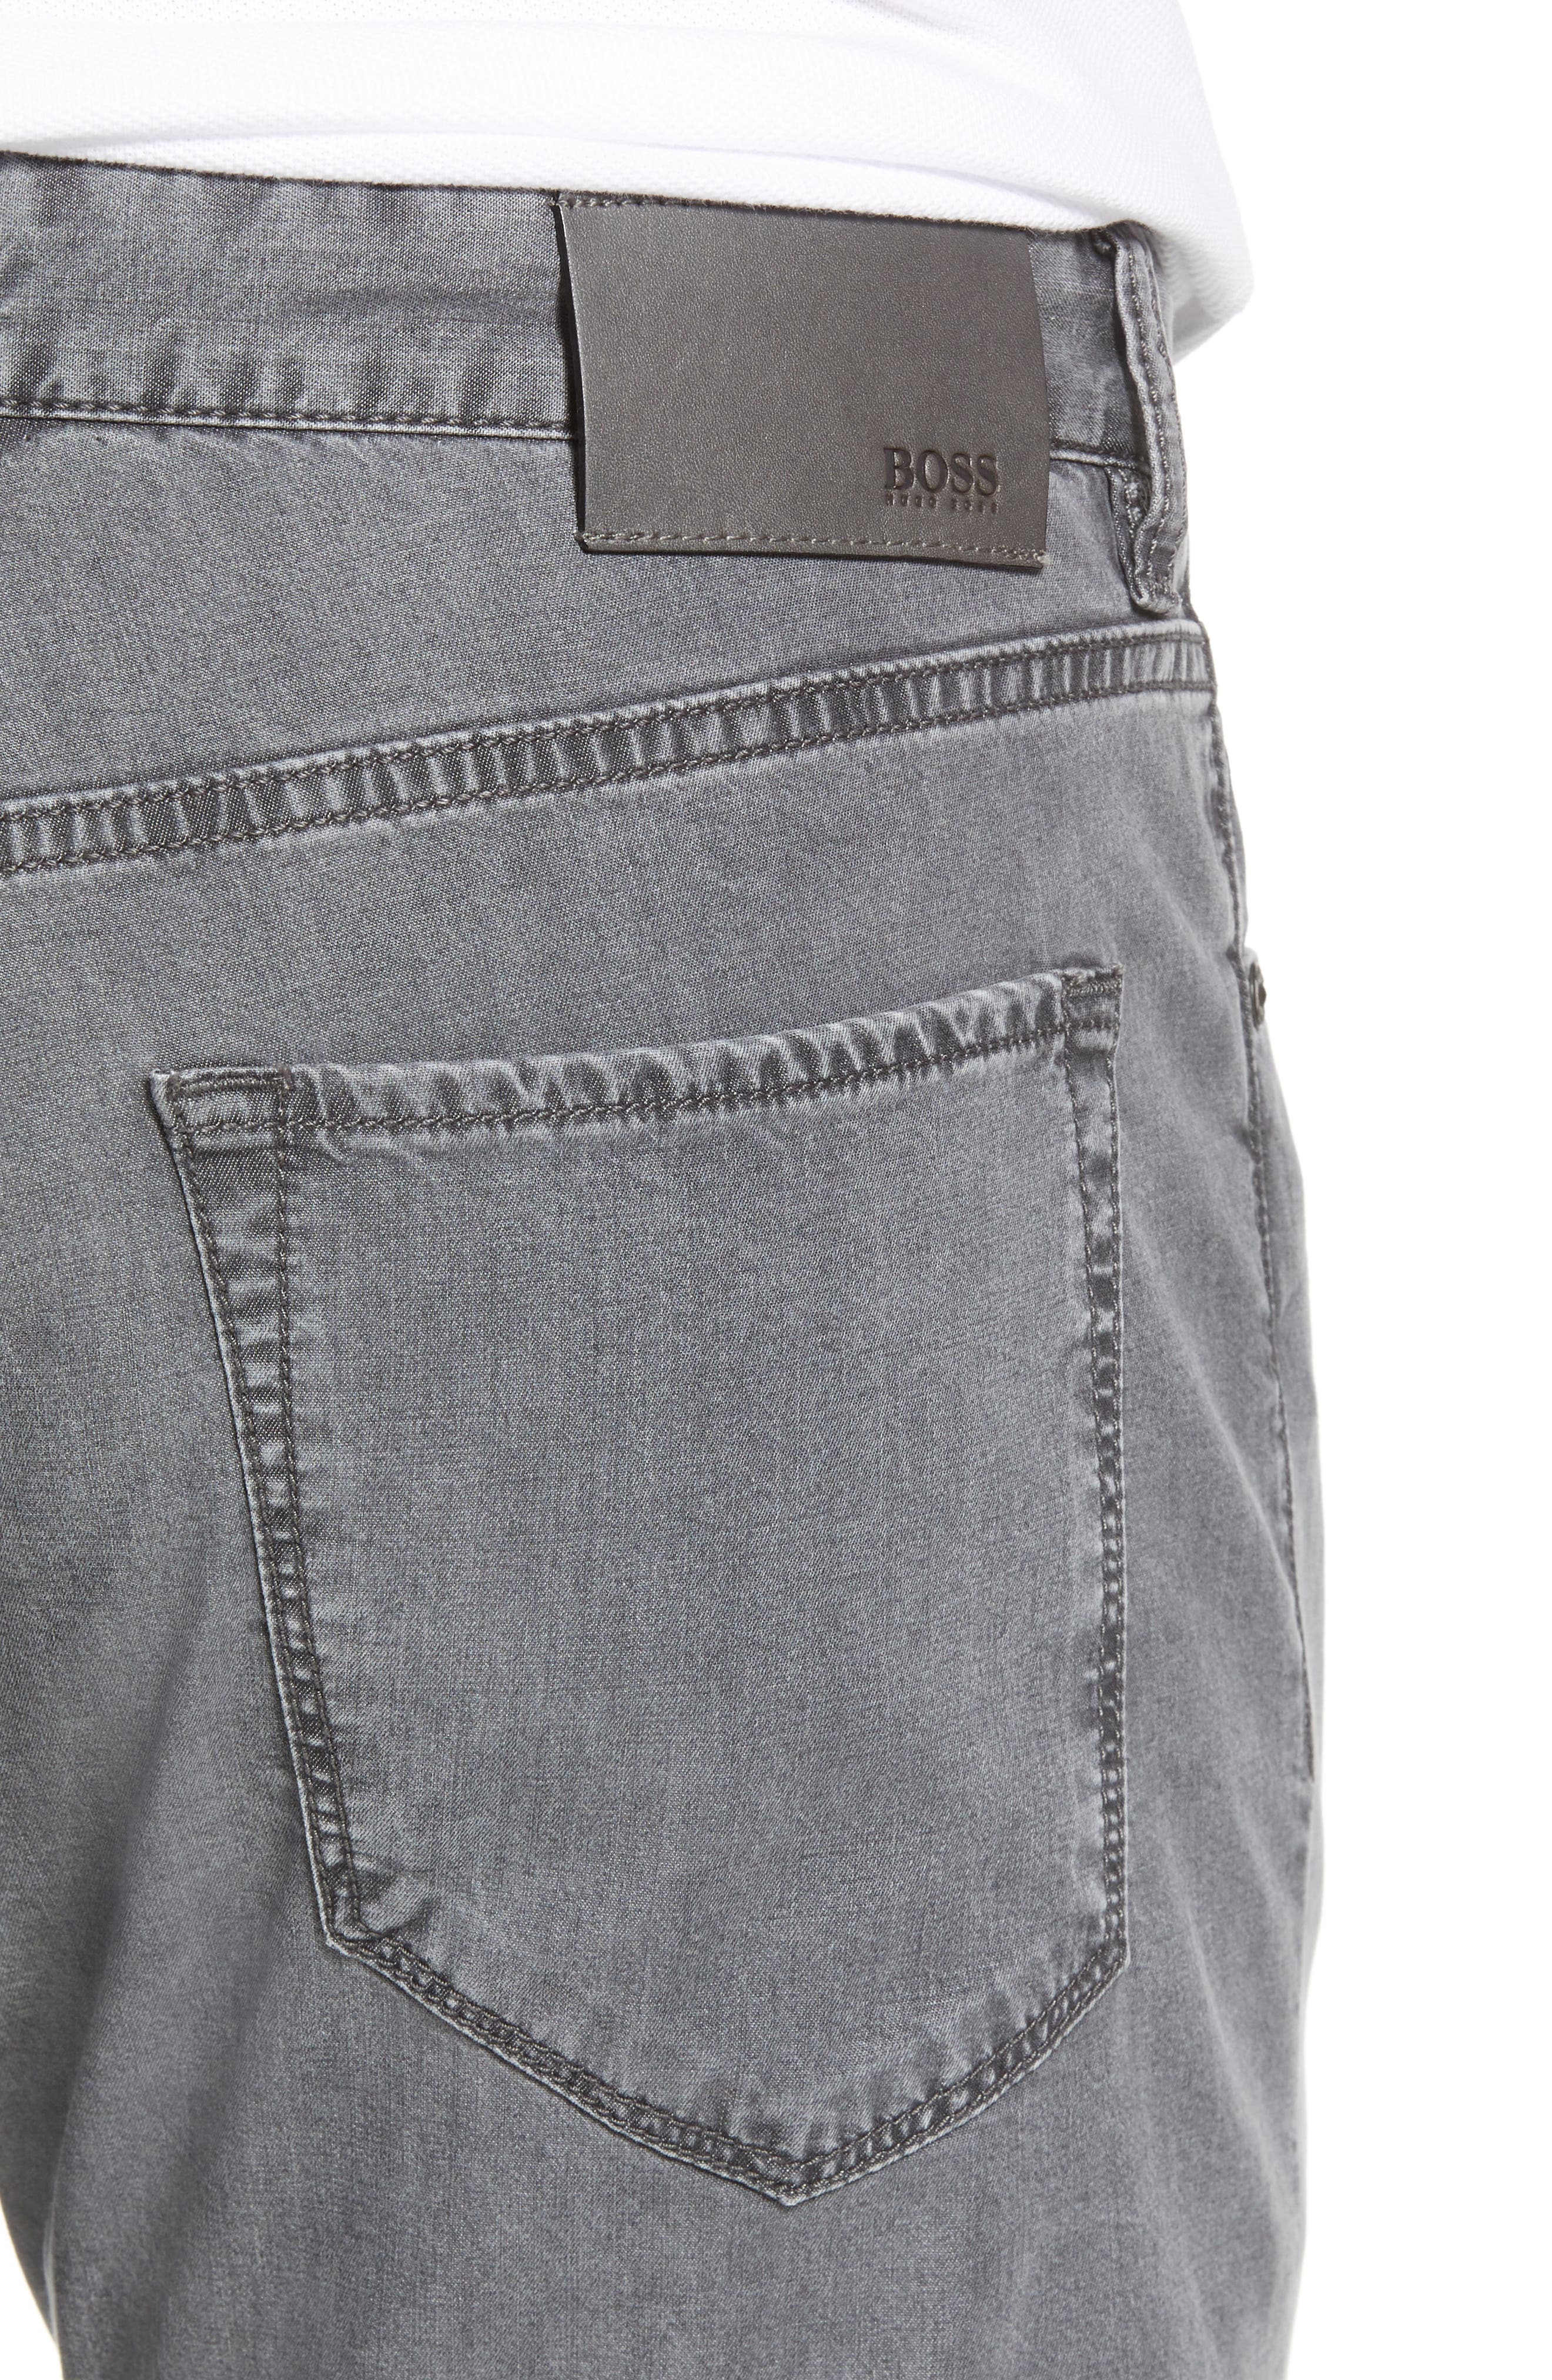 Maine Classic Fit Jeans,                             Alternate thumbnail 4, color,                             GREY